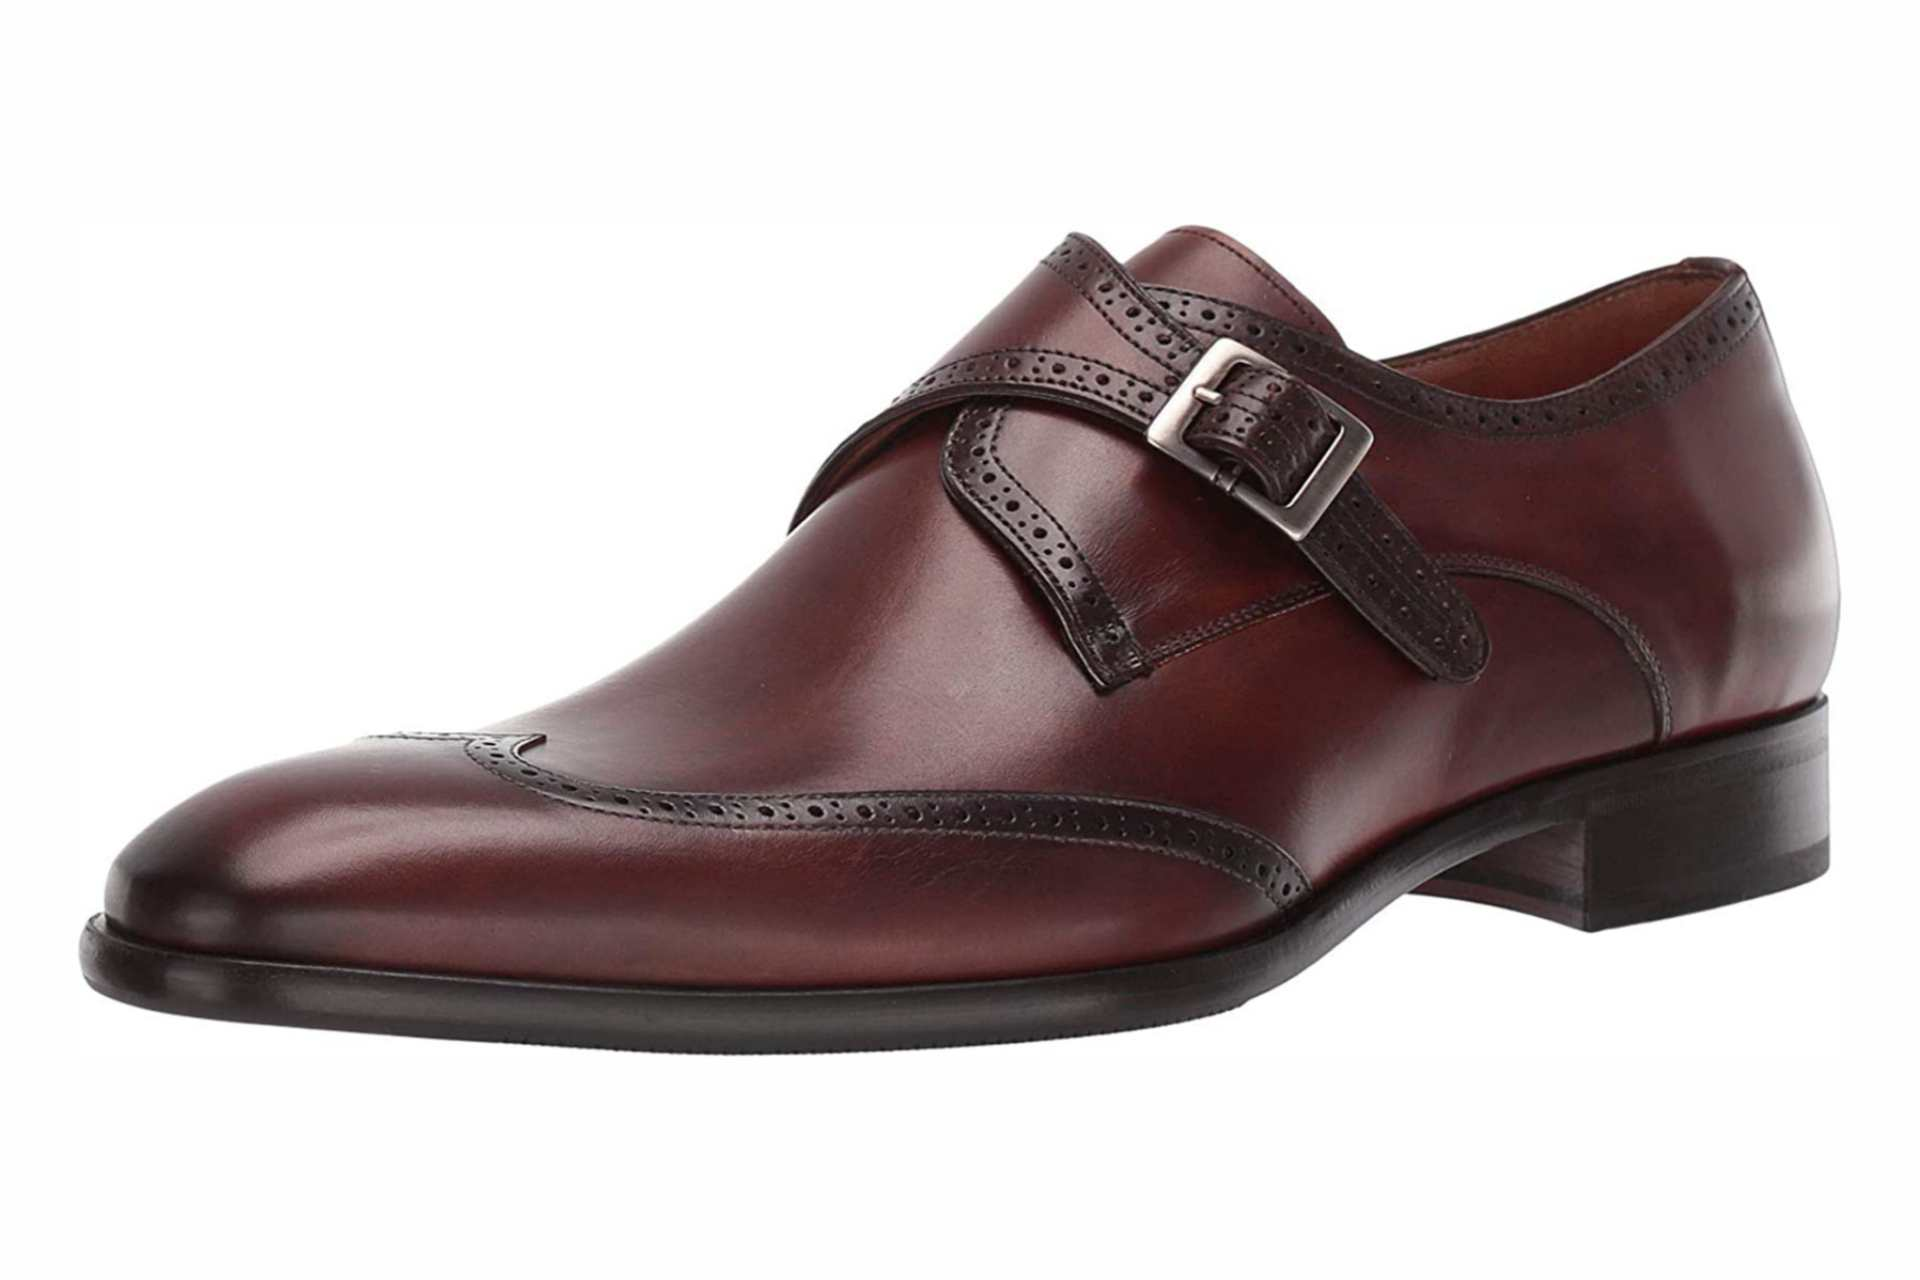 Best brown Monk Strap shoes